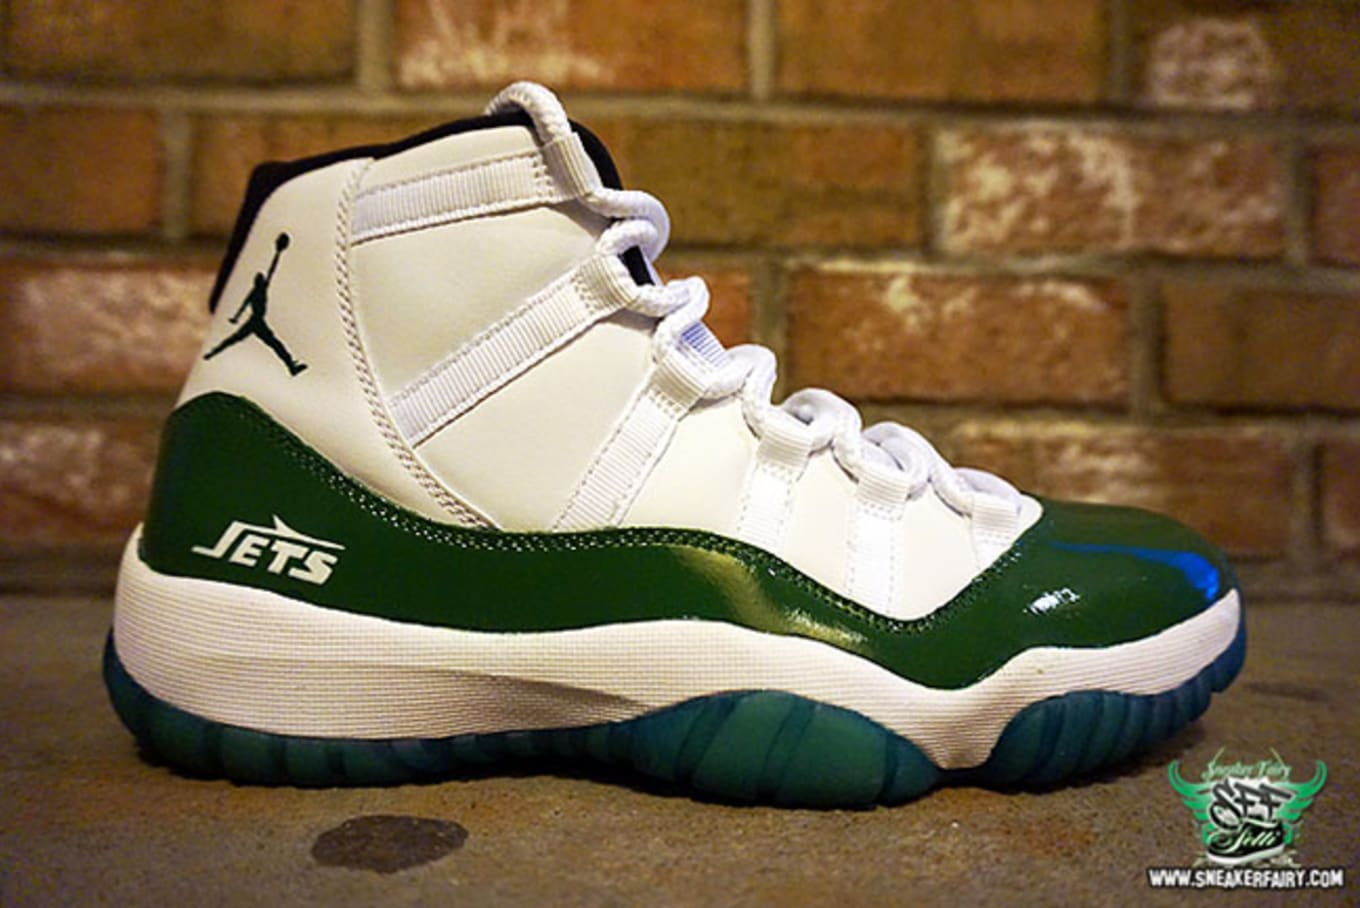 new style 109f2 e4cc7 Air Jordan XI 11 New York Jets Custom by Sneaker Fairy